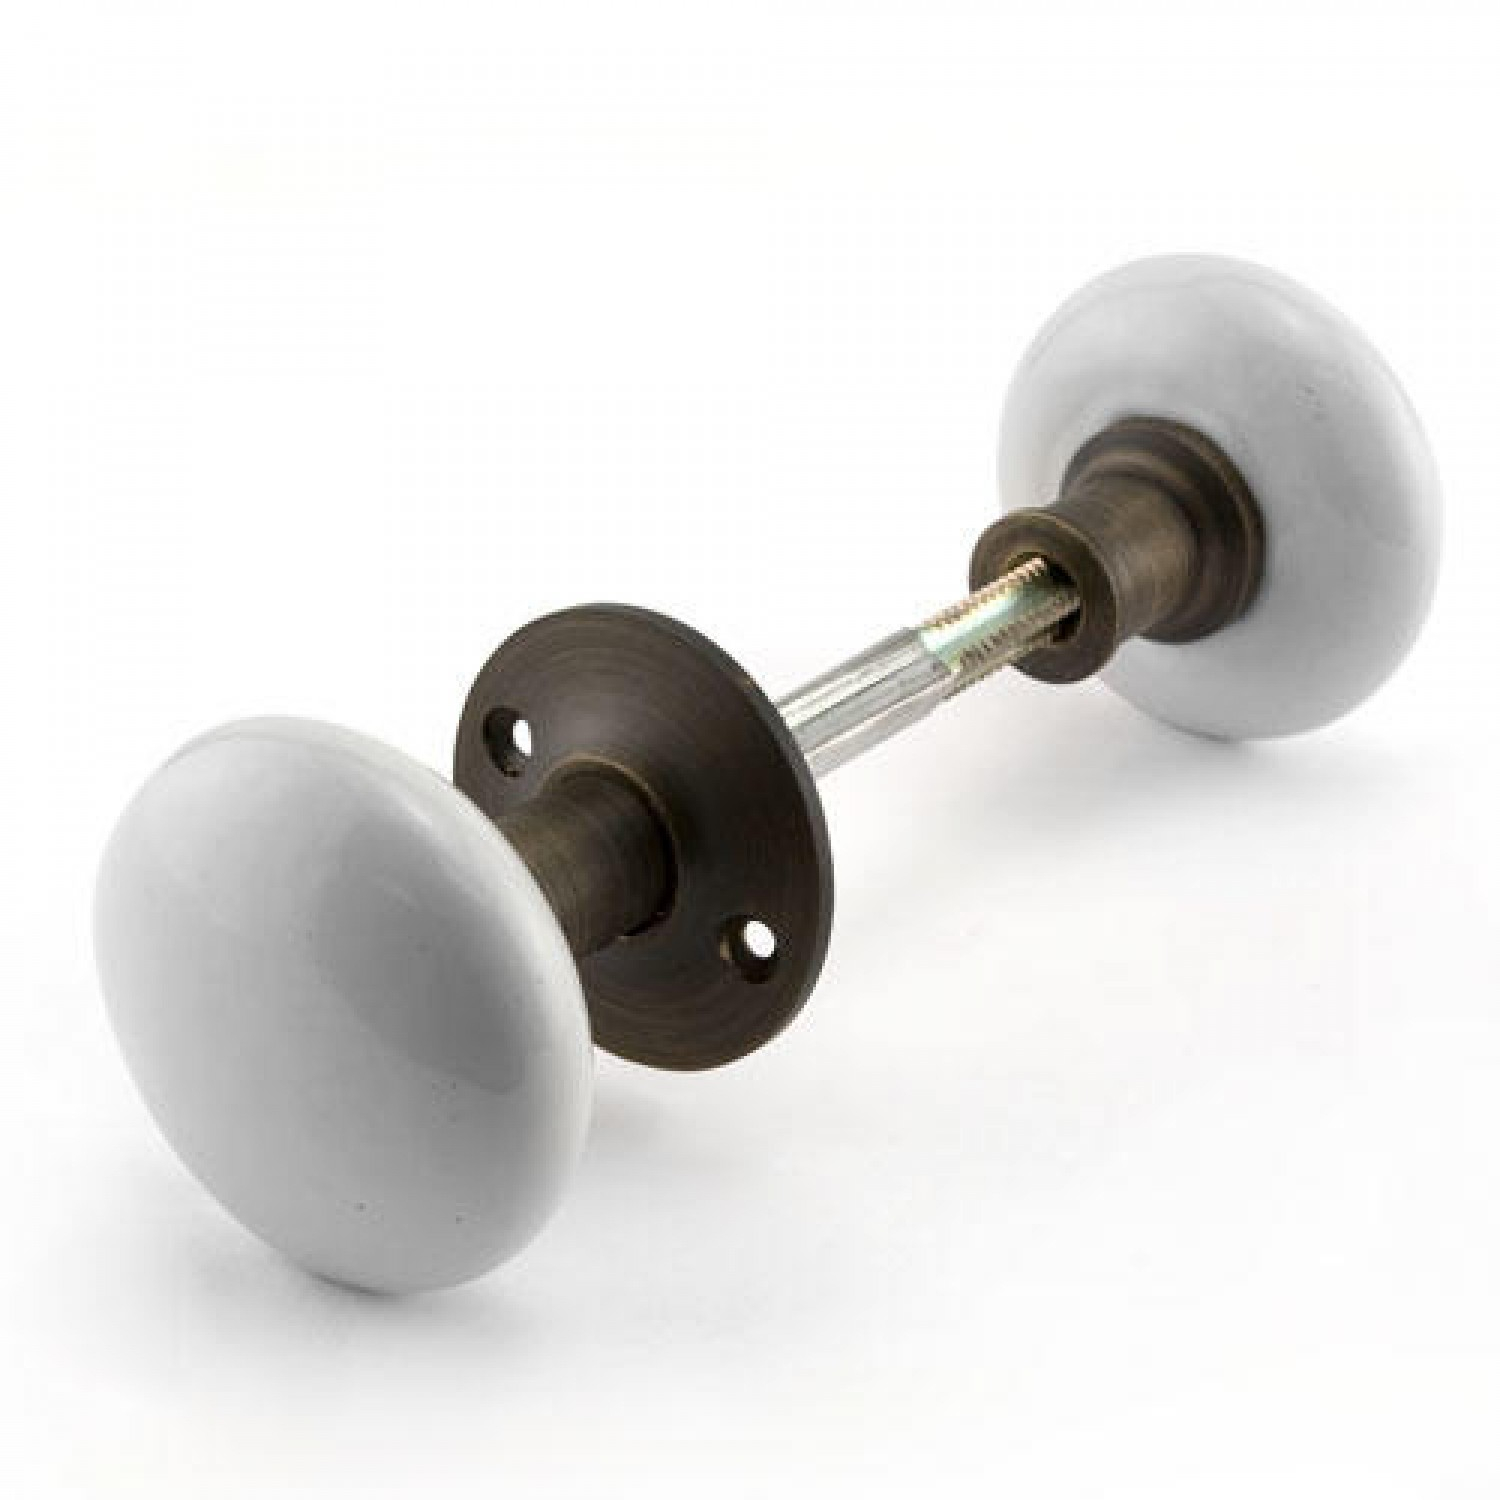 Pair Of White Porcelain Doorknobs For Rim Locks Hardware pertaining to measurements 1500 X 1500